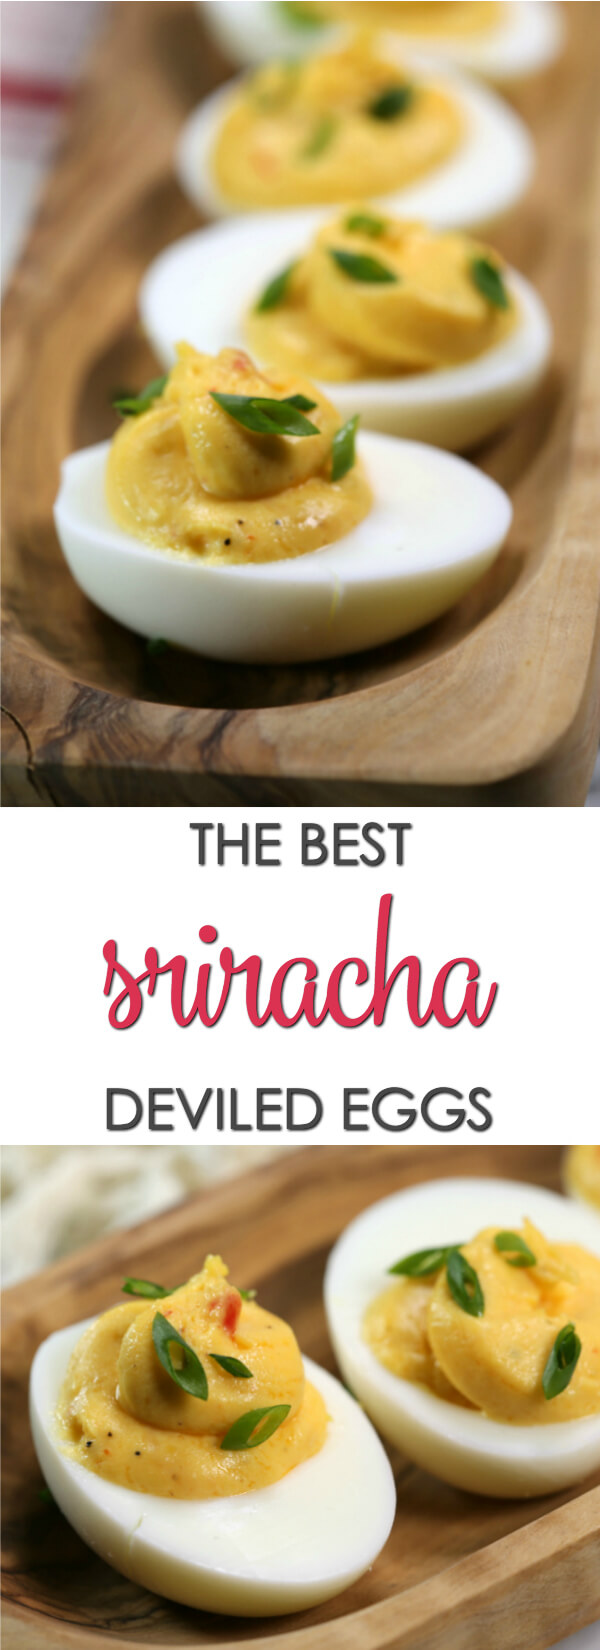 Wondering how to make deviled eggs recipe? This spicy, Sriracha version is loaded with spicy, garlic flavor with just a hint of sweetness. It's a delicious twist on my classic deviled egg recipe. This easy recipe has the perfect balance of heat, sweetness and creaminess.  Find more deviled egg recipes on www.itisakeeper.com  #itisakeeper #recipe #quickrecipe #easyrecipe #eggs #deviledeggs #easter #sriracha